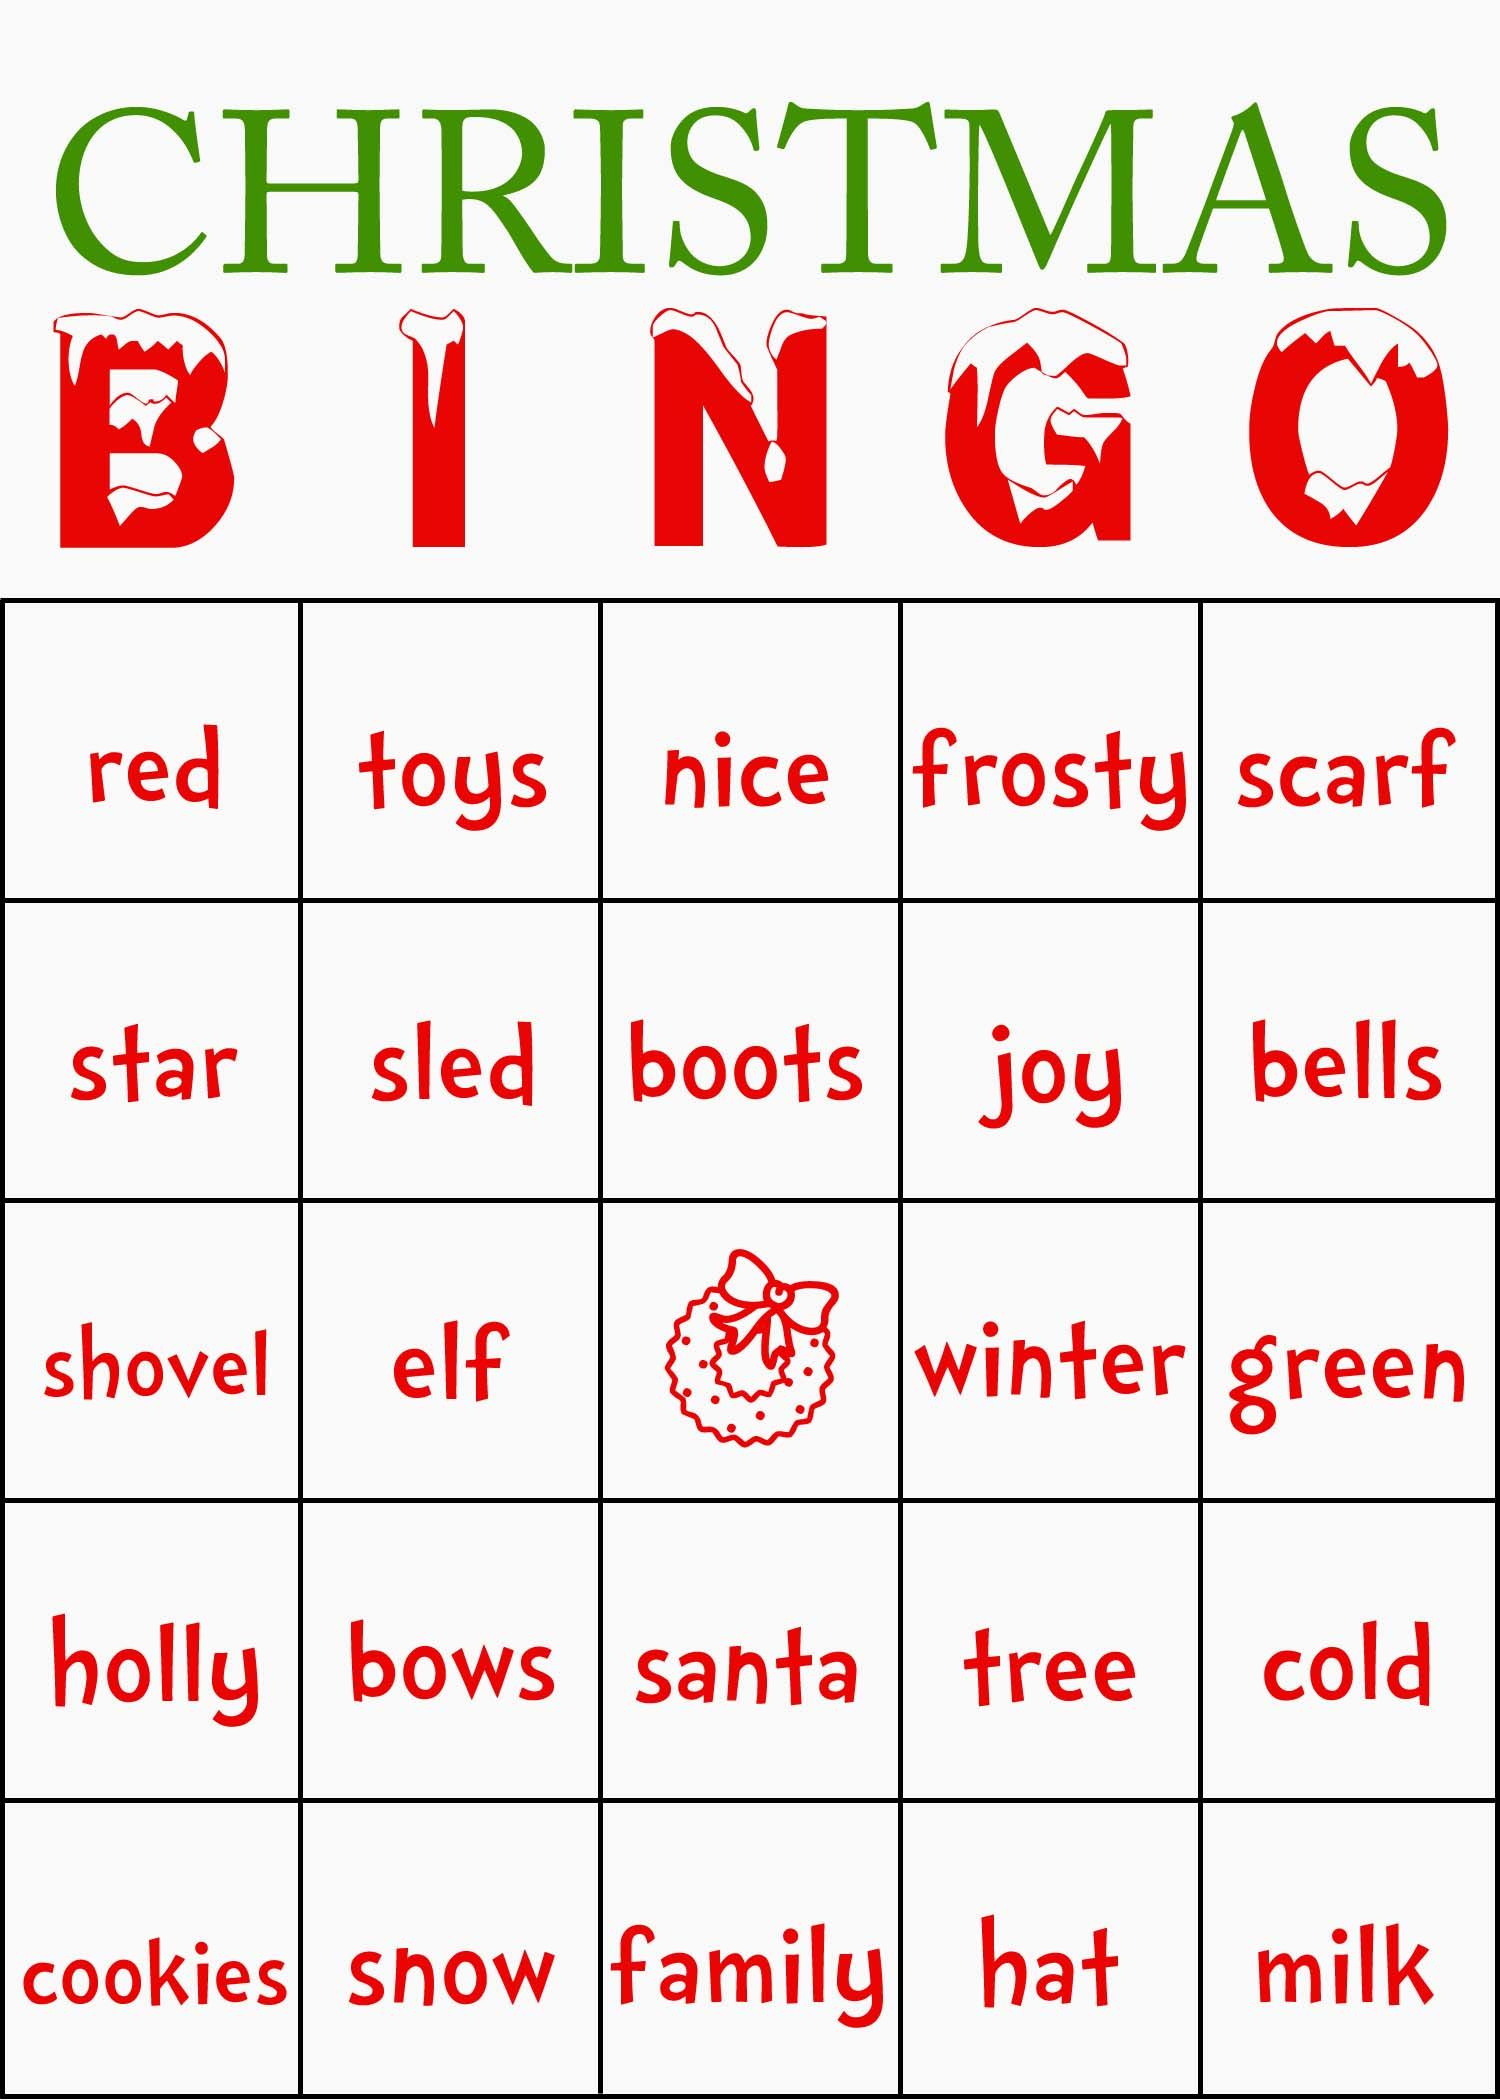 Fun Things To Do On Christmas Day.What To Do For A Christmas Classroom Party Could Be Fun